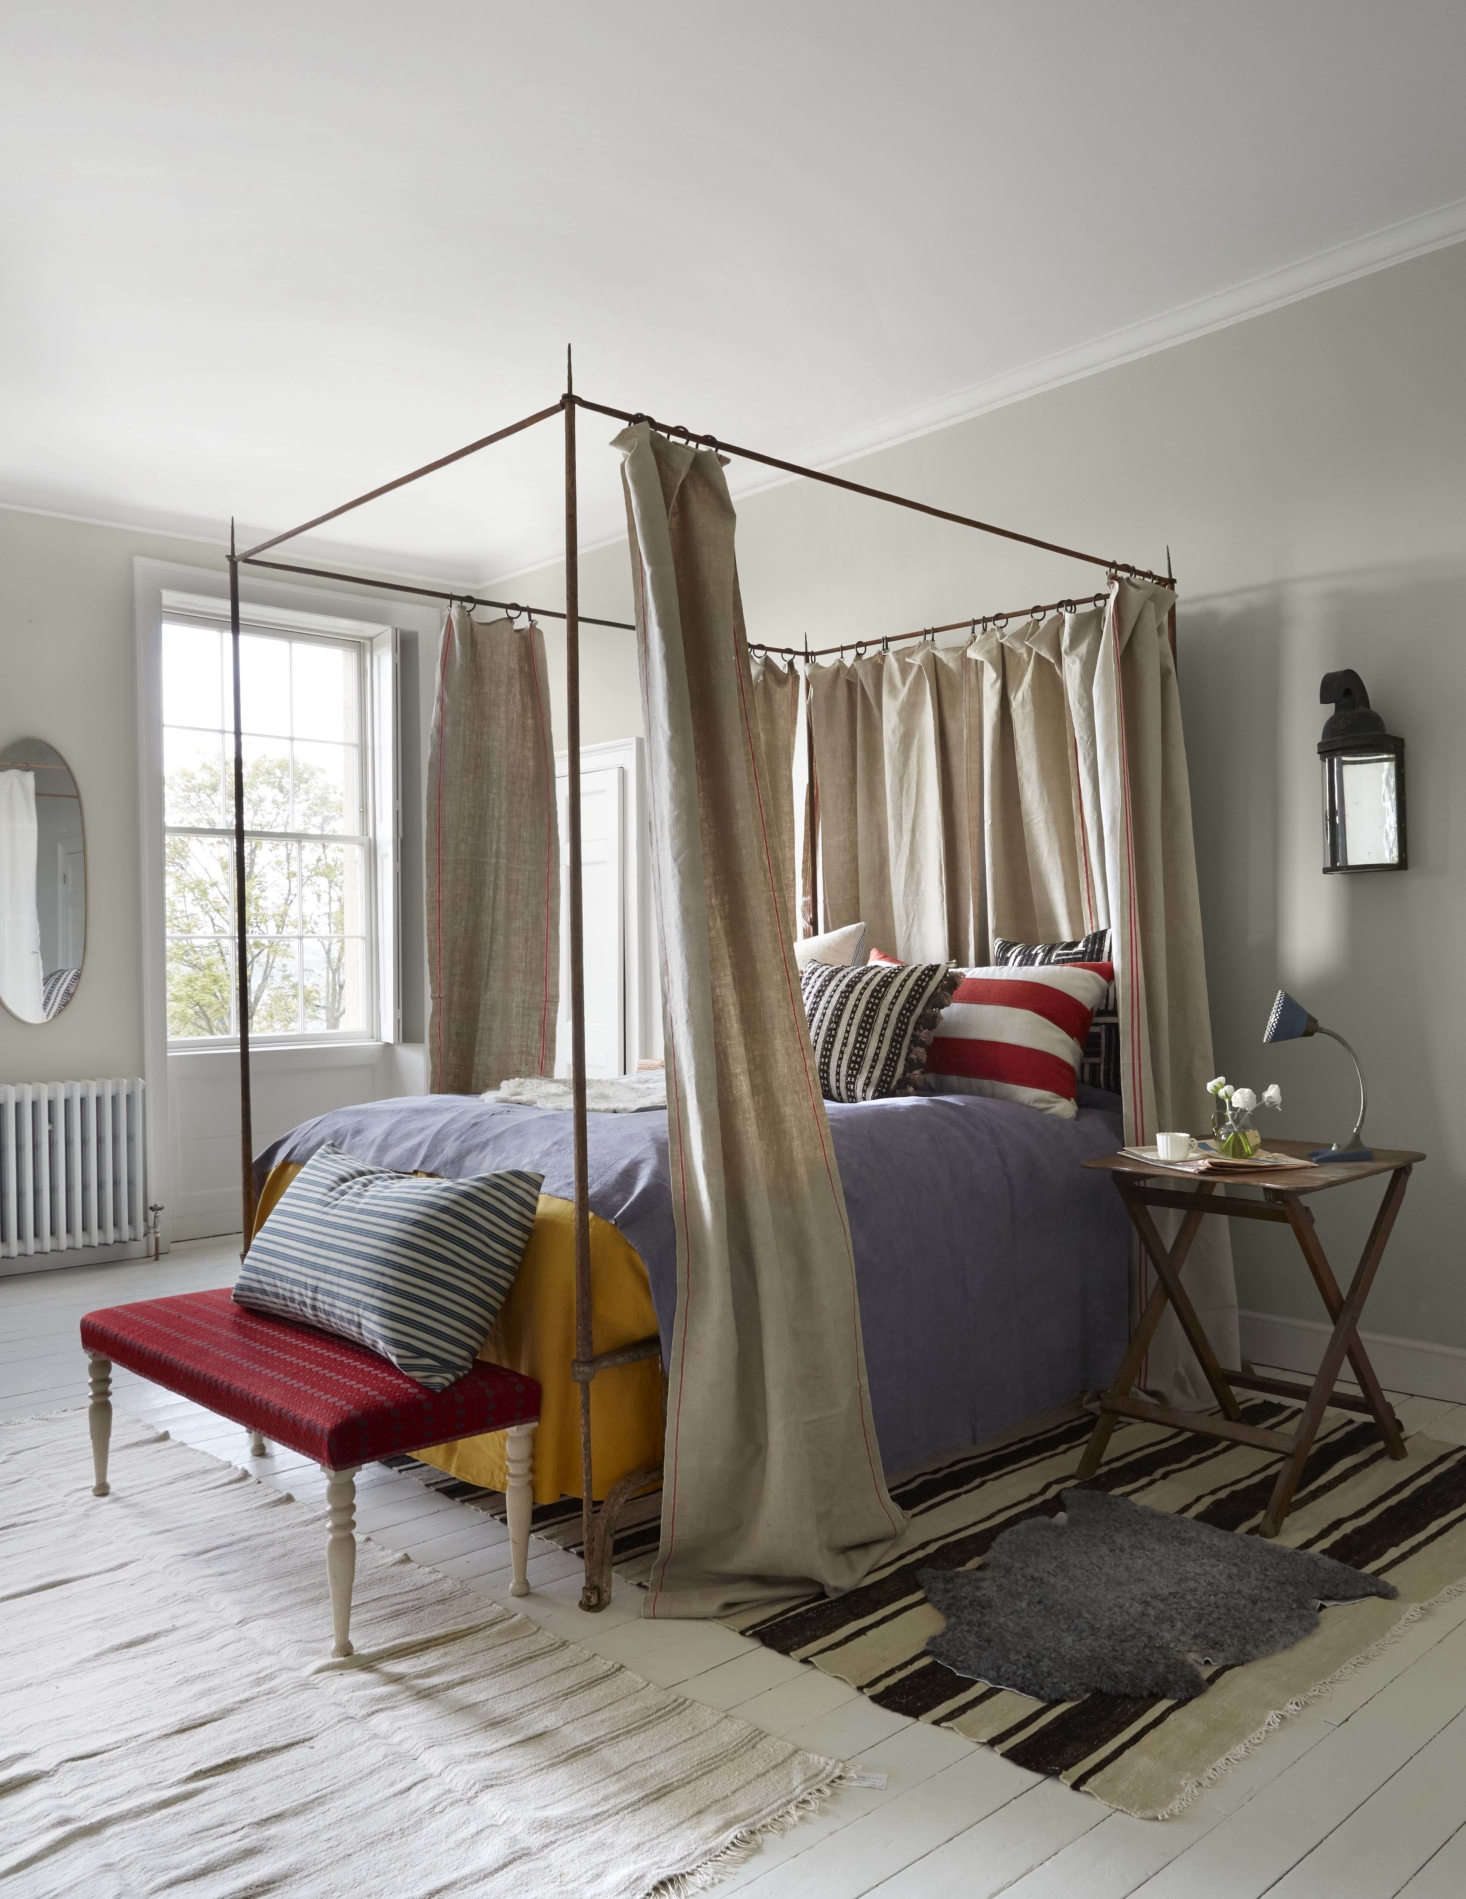 """The main guest room features a canopy bed of wrought iron based on a 17th century Italian original: """"It took me years to find a blacksmith with the skill and courage to make it,"""" Howe tells us. The bed curtains are linen as is the hand-dyed lavender bedspread; both are from Howe's vintage fabrics offshoot,Howe at 36 Bourne Street."""